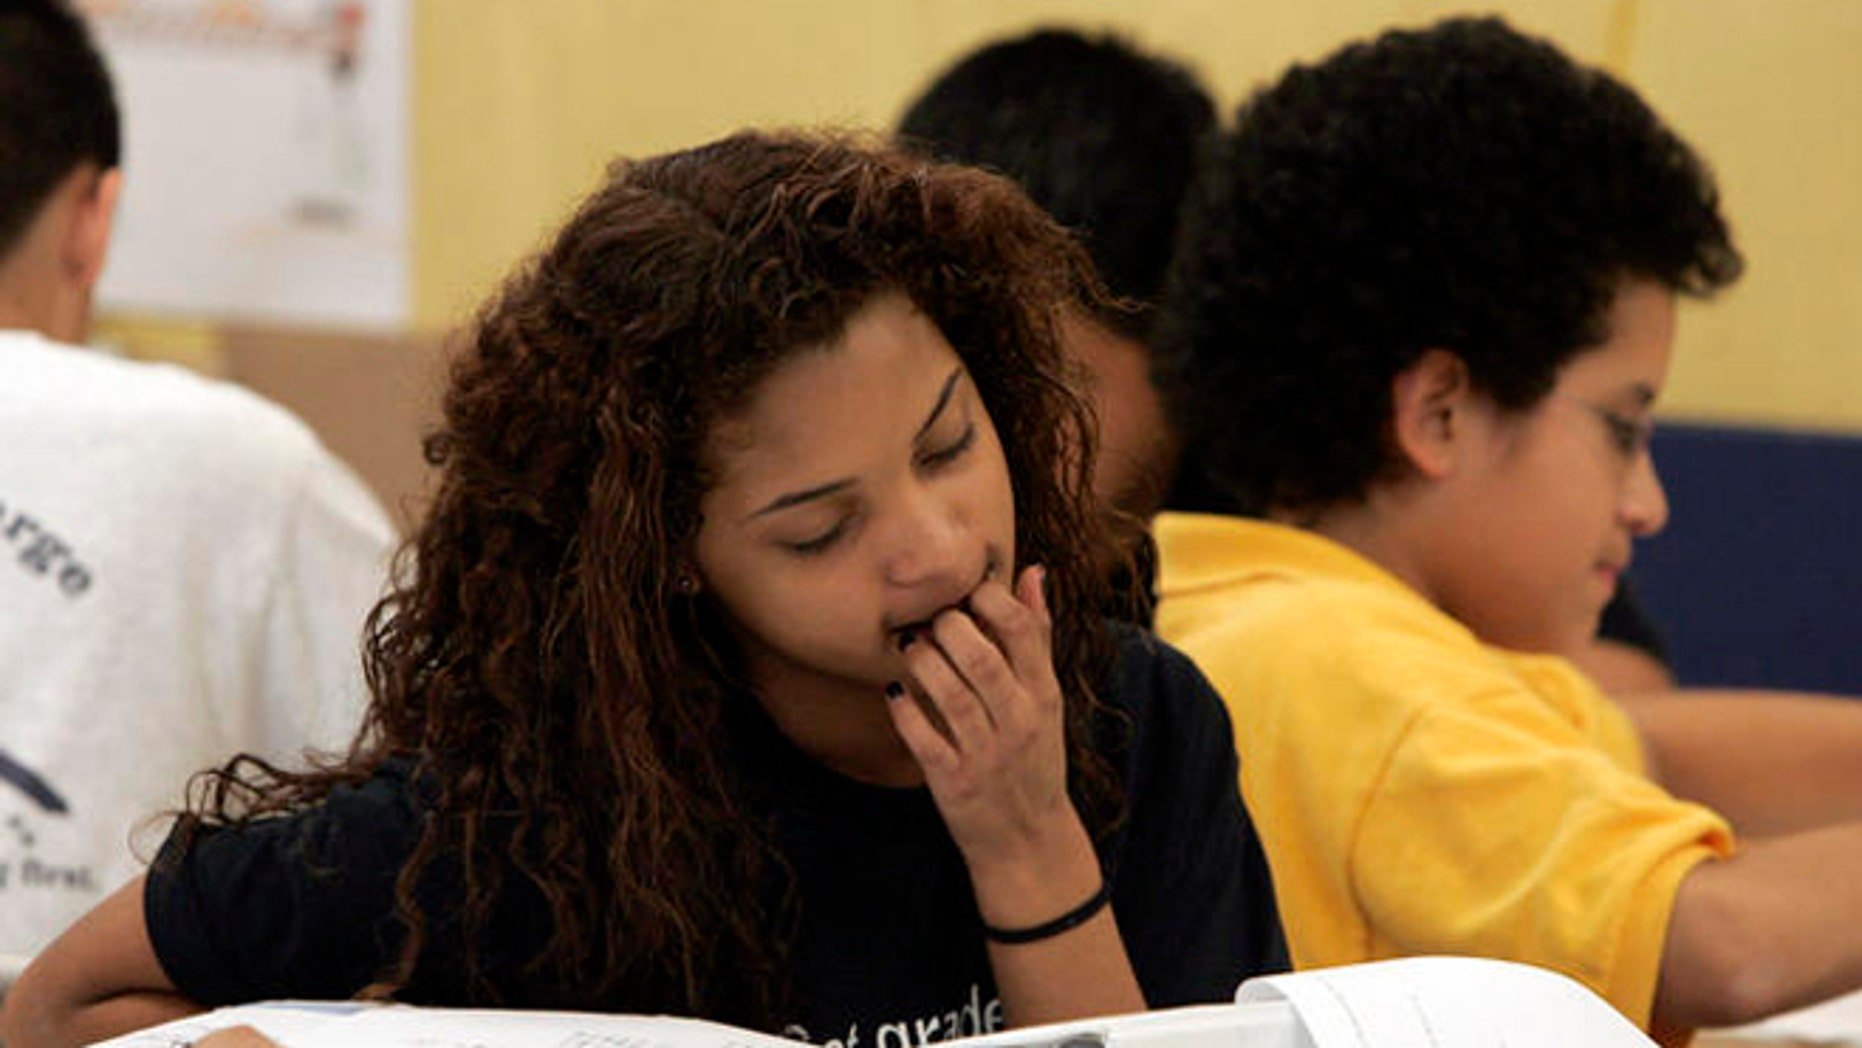 Brianna Burks, 12, works in class at KIPP charter school Tuesday, April 3, 2007, in Houston. While one in six charter schools in Texas fails, Houston-based KIPP continues to expand in poor and minority communities. (AP Photo/Pat Sullivan)